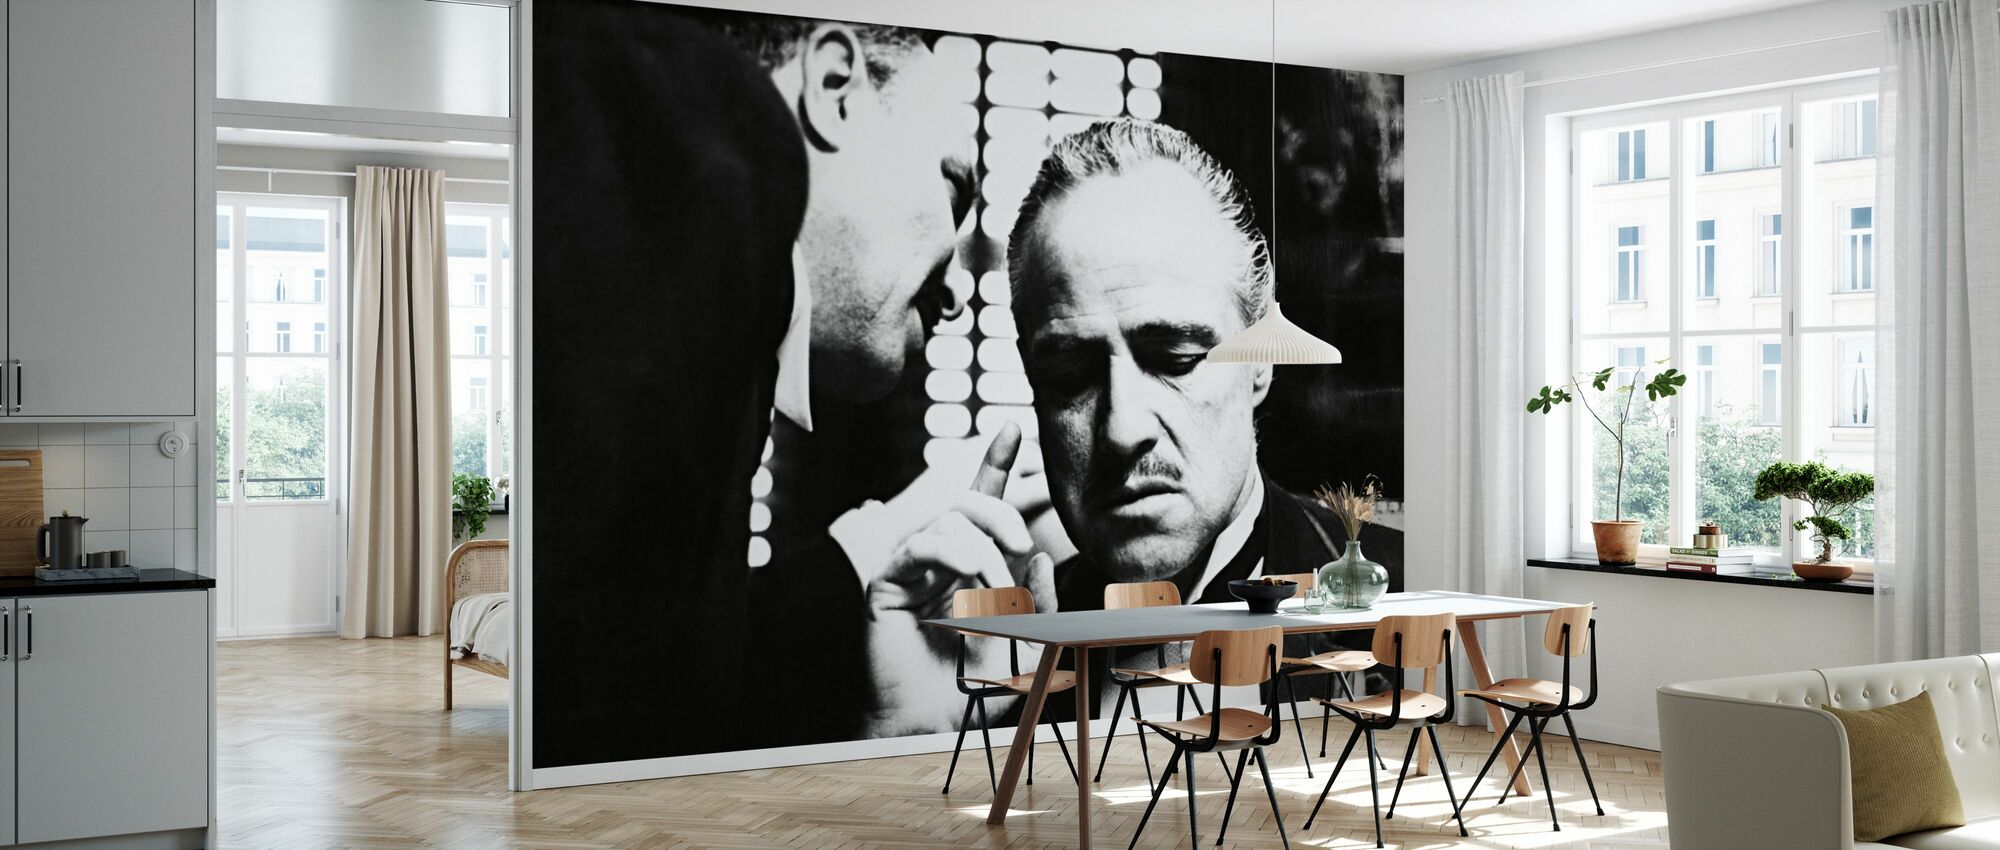 Marlon Brando in the Godfather - Wallpaper - Kitchen